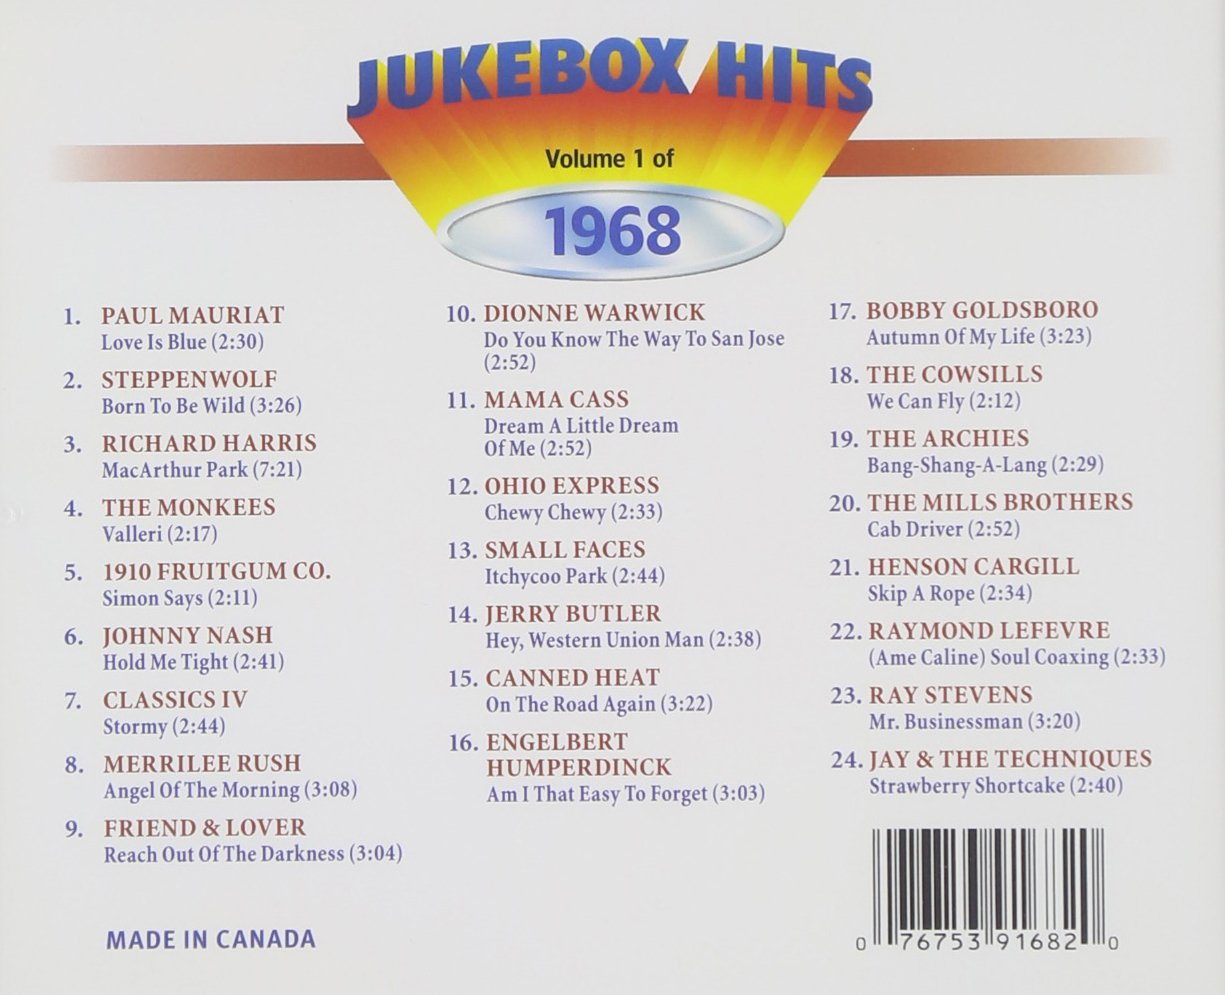 Jukebox Hits Of 1968 Vol. 1 by Jukebox